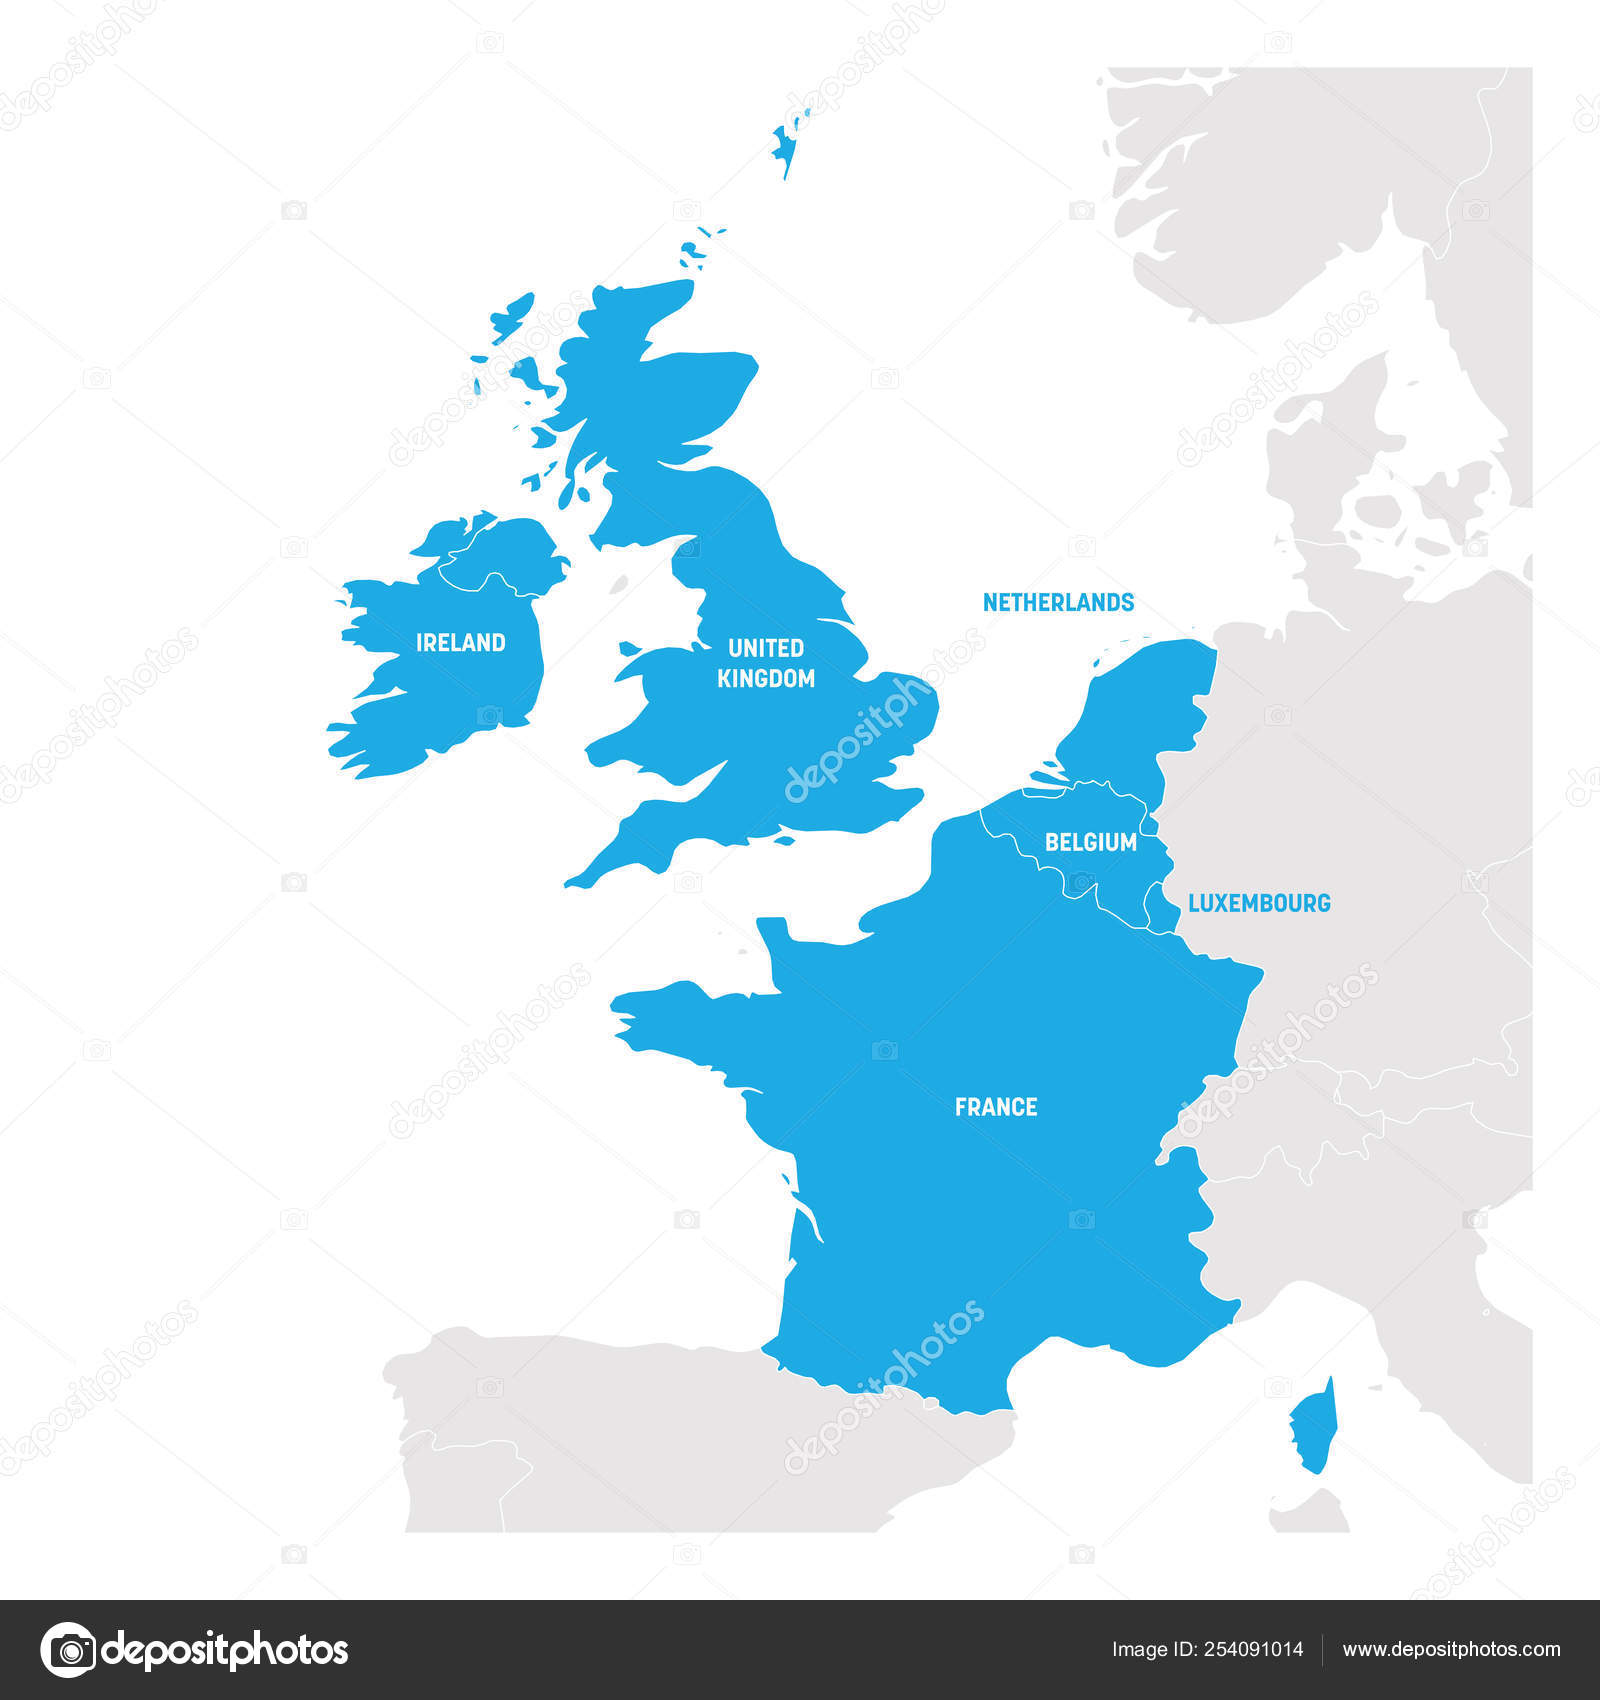 West Europe Region Map Of Countries In Western Europe Vector